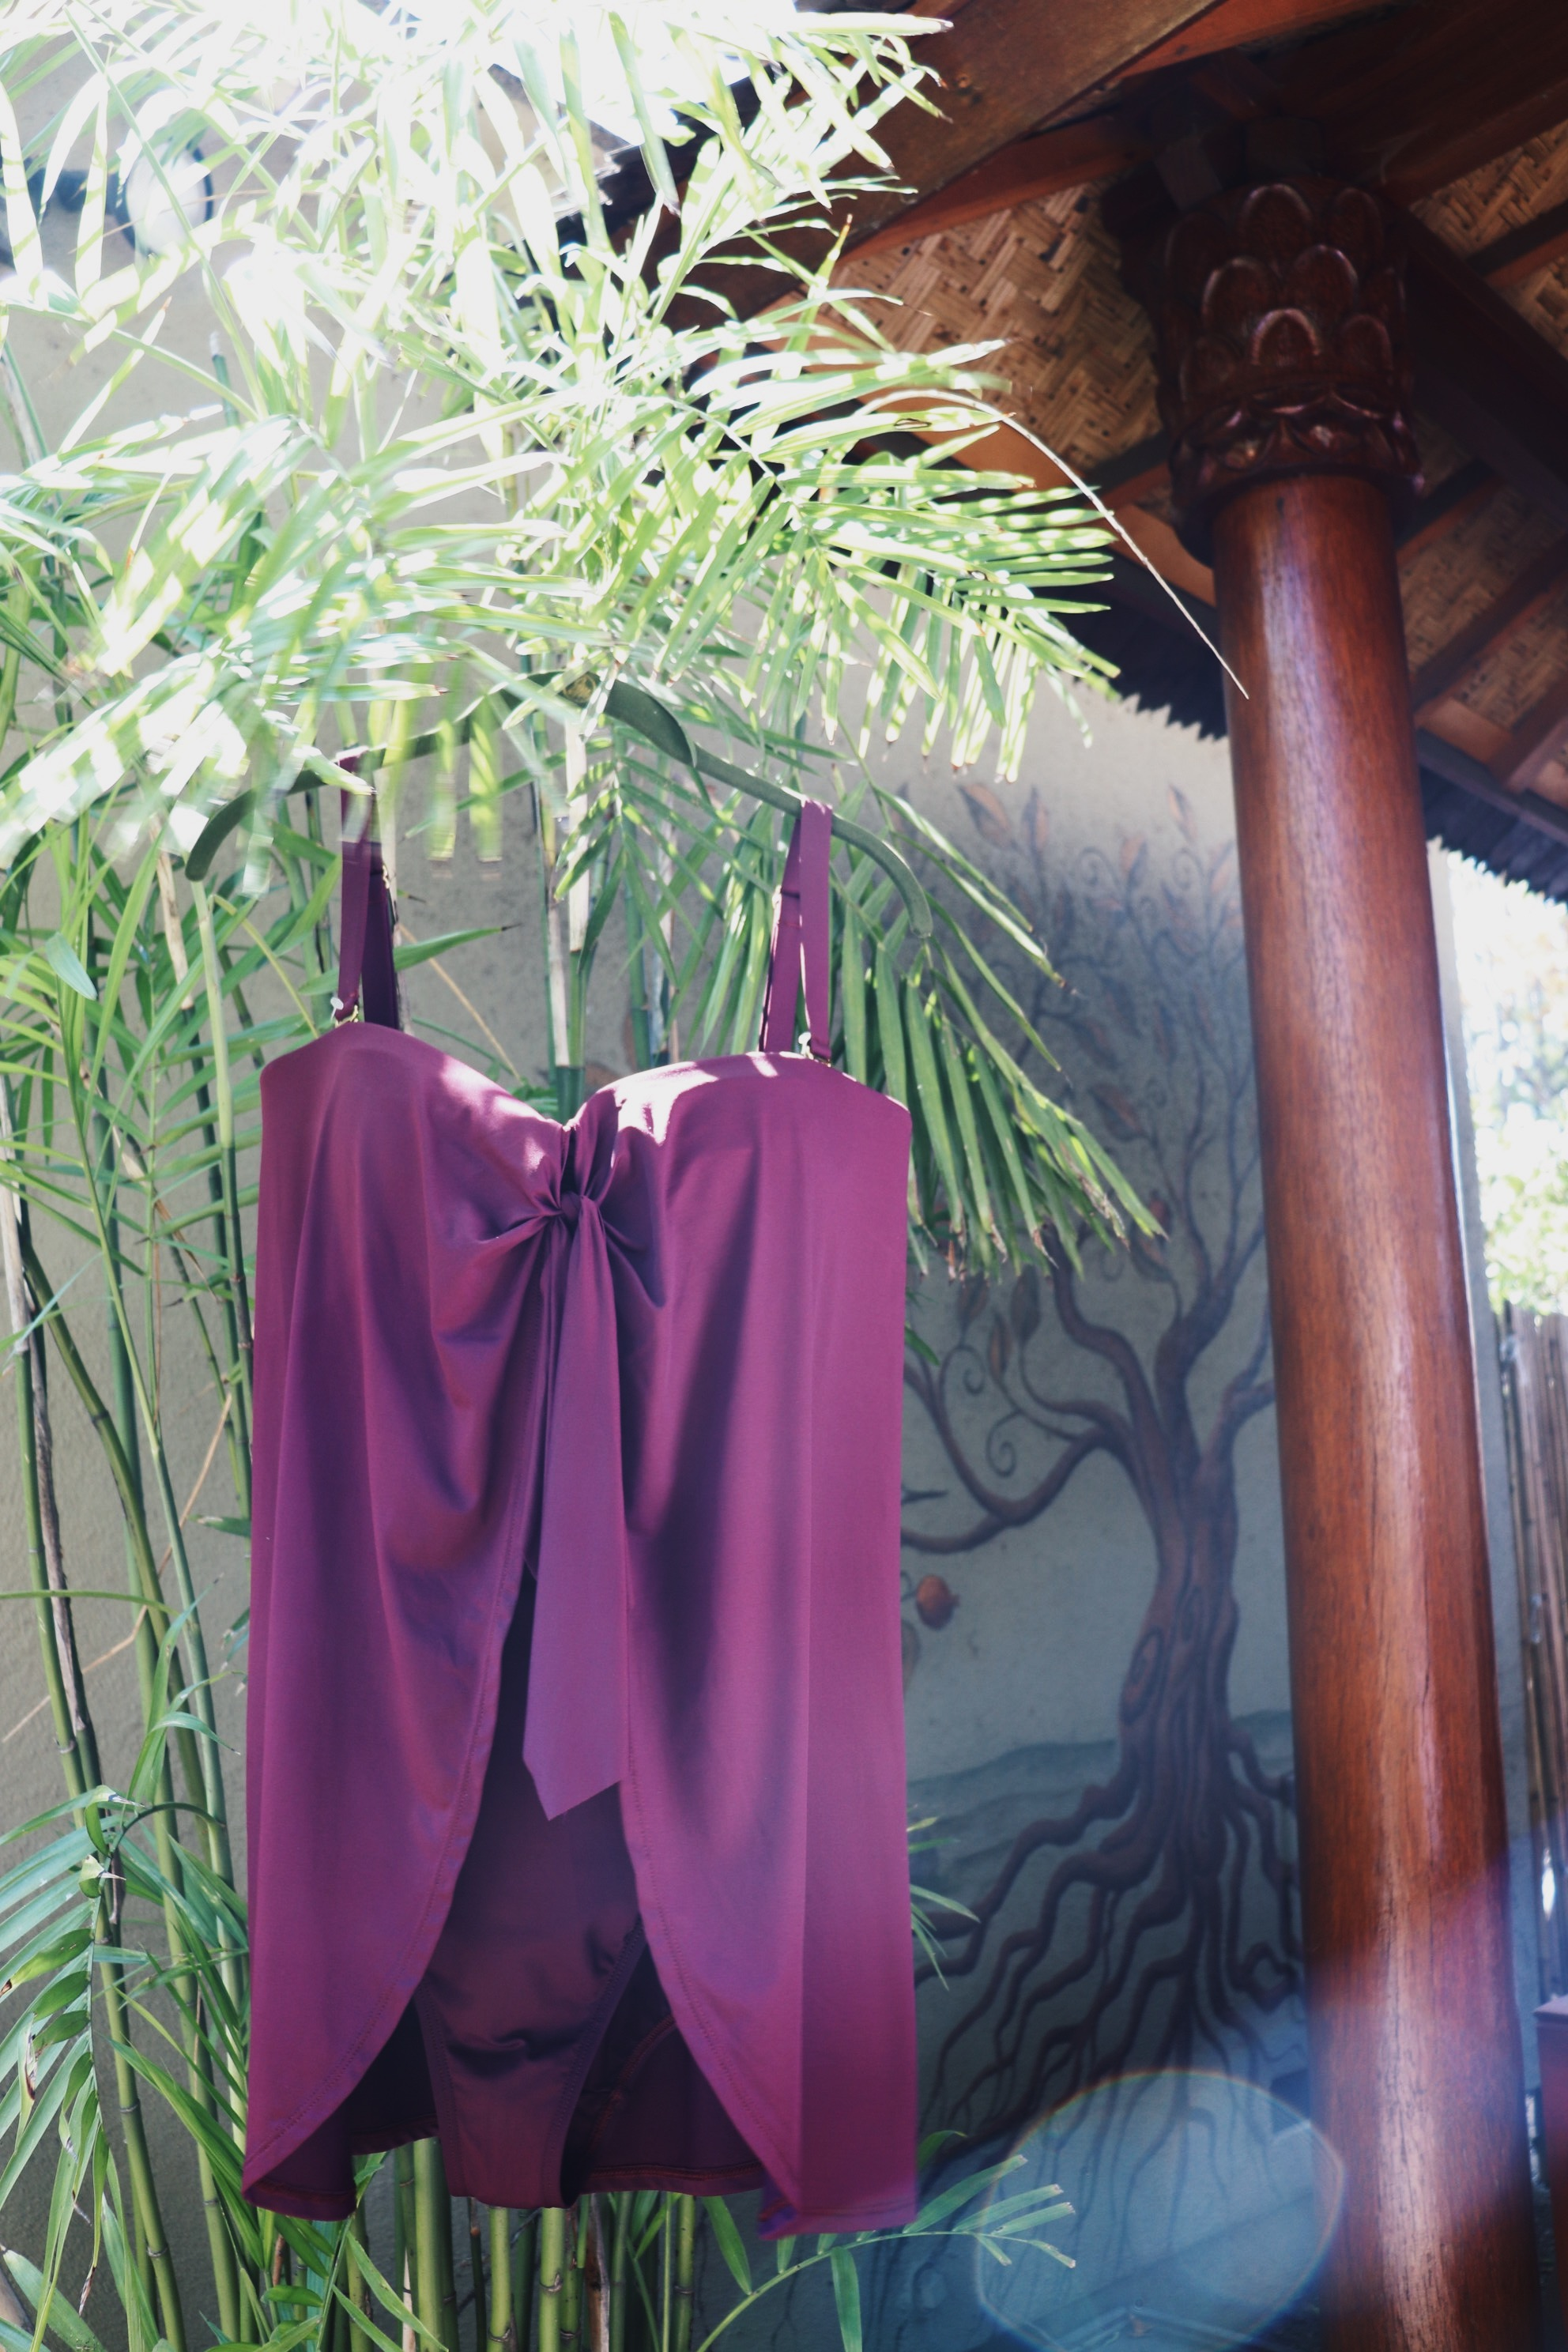 The One-Piece Wonder - That's right Bebots, gone are the days when wearing a one-piece swimsuit meant you were either a serious swimming Olympian, sun-averse, or body-conscious. Fashion designers have heard our cries and cascaded the mall with one-piece styles anyone can love in cuts and colors that rival the two-pieces we've been starving to fit in for years. Easy to pack and so comfortable, for me, the one piece swimsuit is a matter of style, and personal preference. And whether your look is retro or sexy, today's one-piece suits options are experiencing a wondrous resurgence.Below are a couple I'm saving my pennies for:-Tropical Swimdress-Sexy Cut-Out Suit-Metallic One Shoulder-Striped One-Piece-Ice Cream Cutie